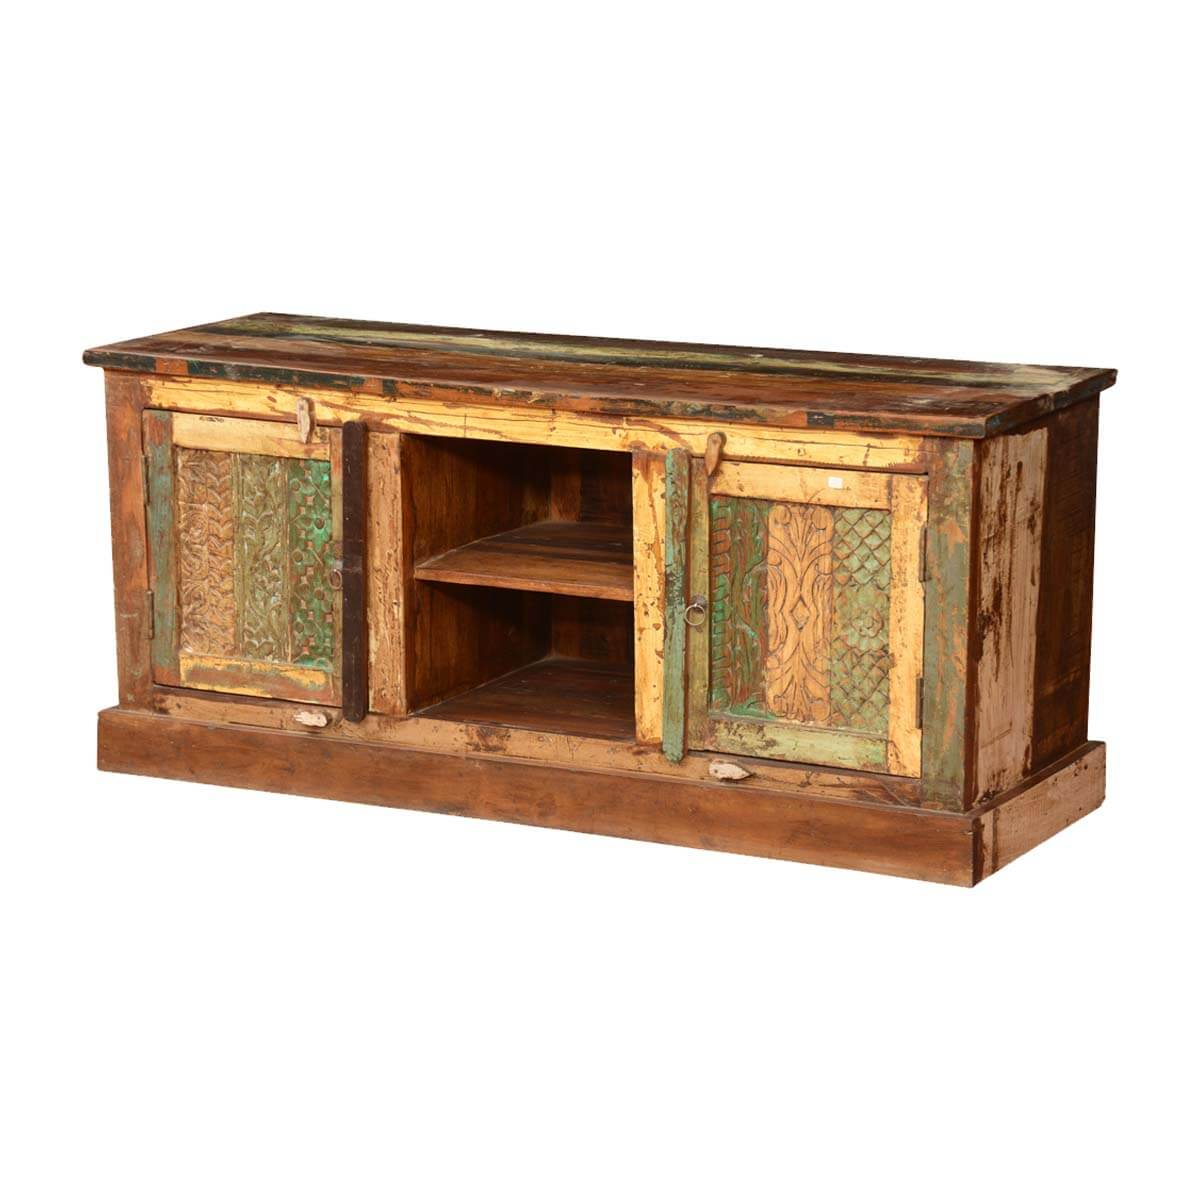 Pioneer rustic reclaimed wood tv console entertainment